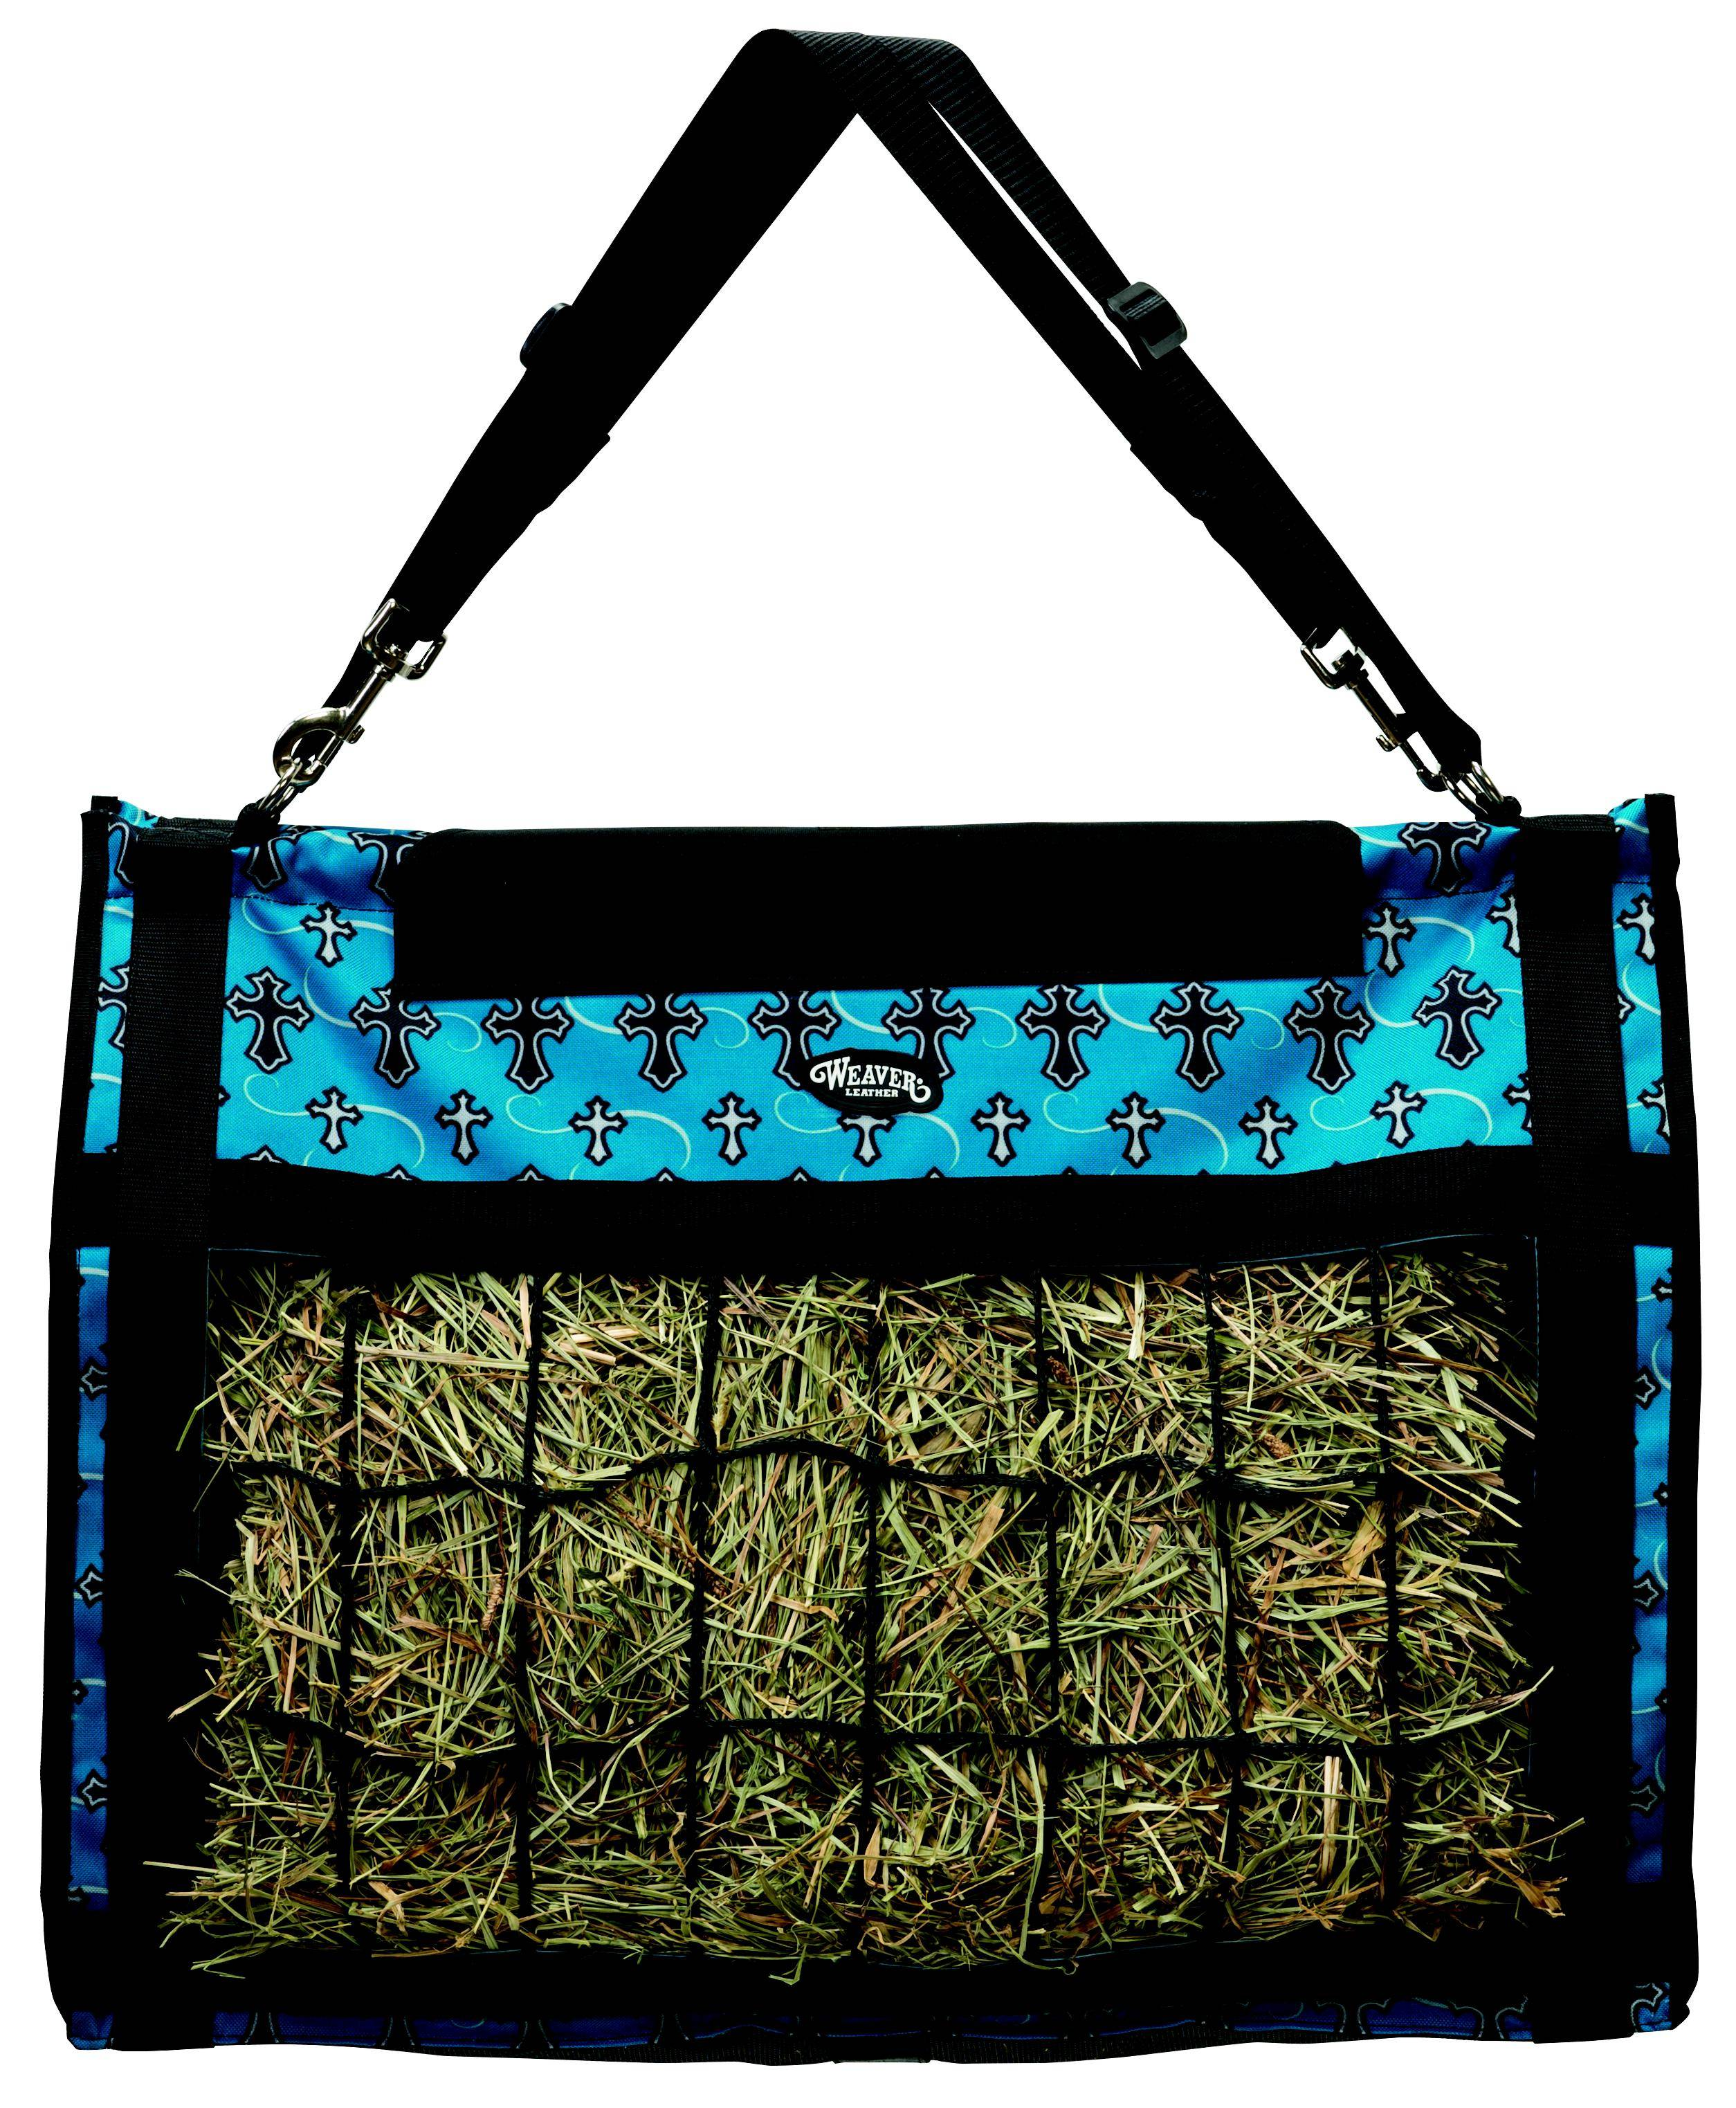 Weaver Leather Slow Feed Hay Bag - Crosses